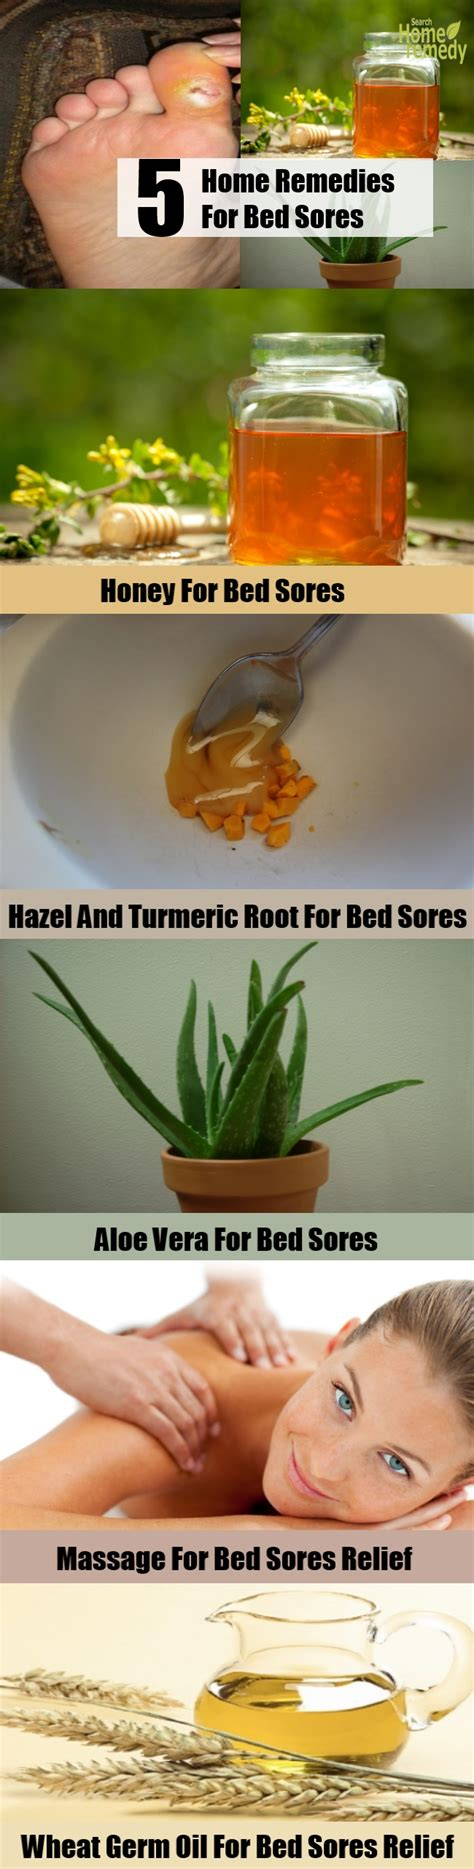 Treatment For Bed Sores Home Remedies by 5 Top Home Remedies For Bed Sores Remedy